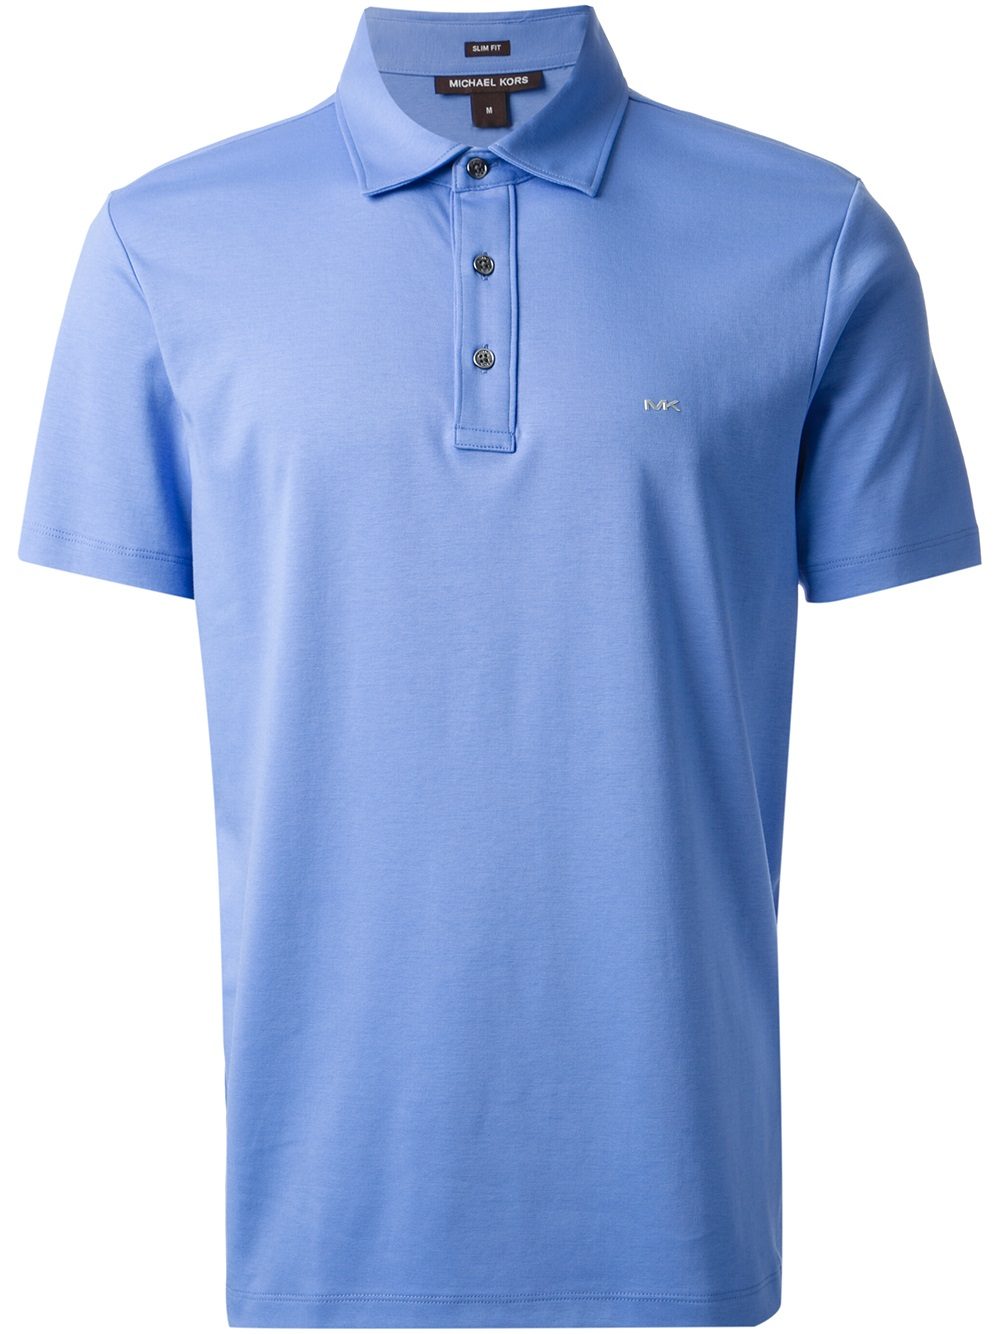 8c79acbf Michael Kors Classic Polo Shirt in Blue for Men - Lyst